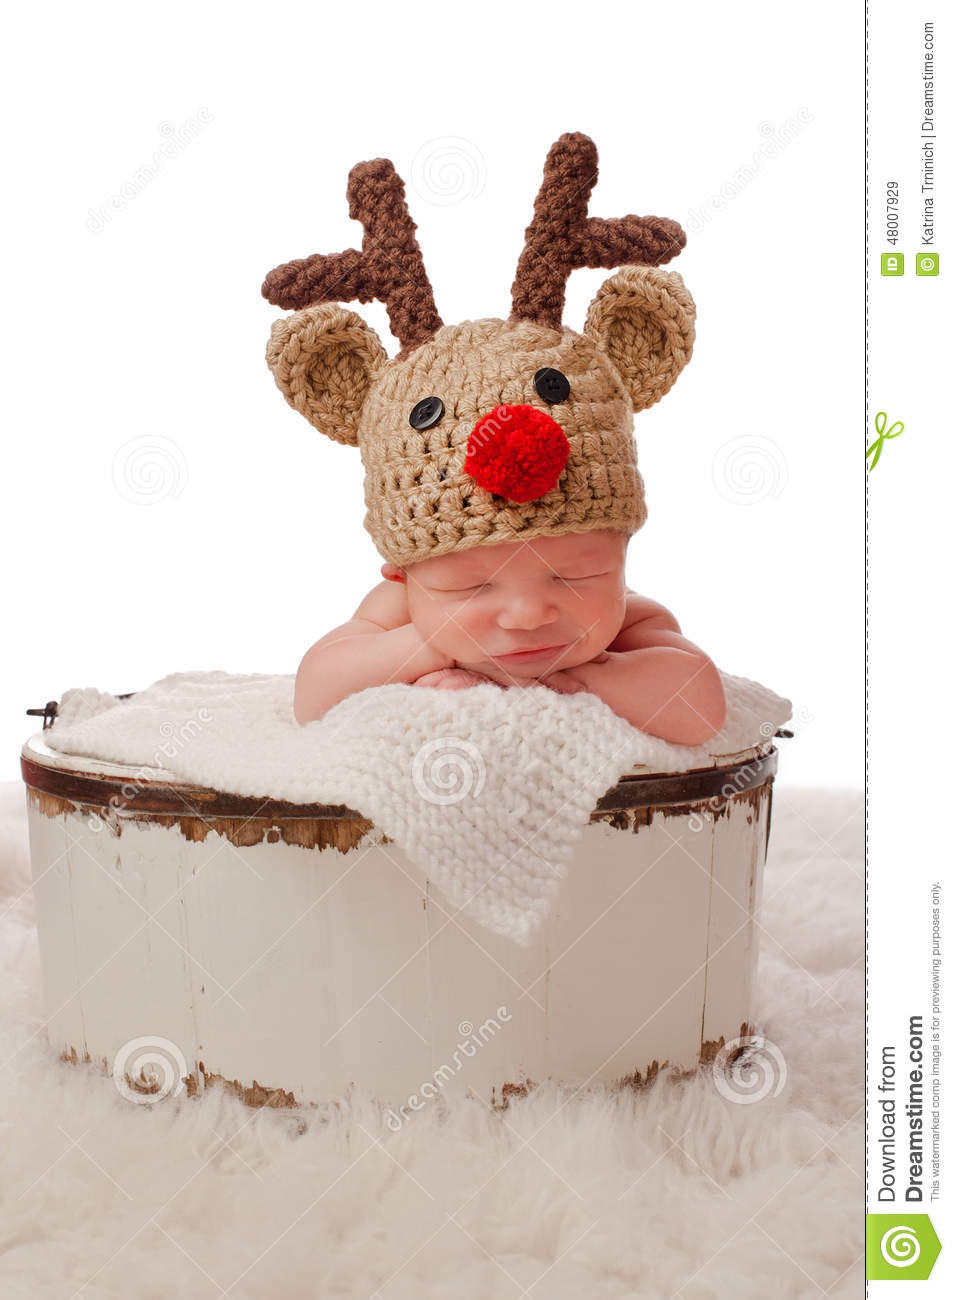 d27838e13 A smiling eight day old newborn baby boy wearing a red nosed reindeer hat  and sitting in an antique wooden bucket. Photographed in a studio on a  white ...